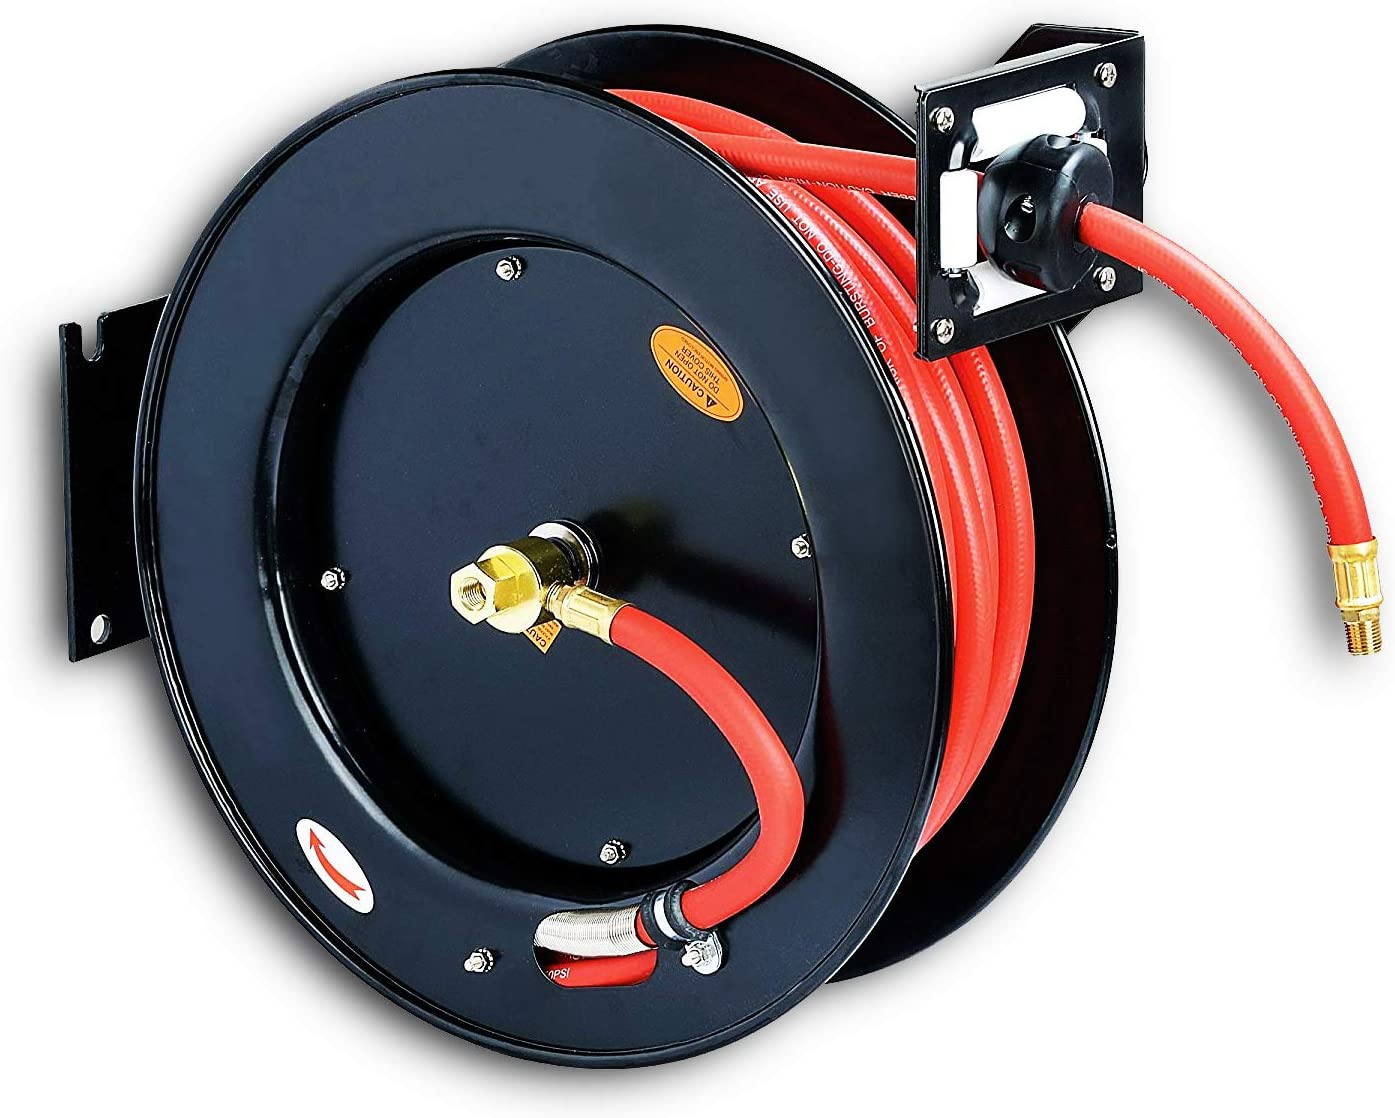 """REELWORKS Air Compressor/Water Hose Reel Retractable Spring Driven Steel Construction Heavy Duty Industrial 3/8"""" x 50' Max 300 PSI Premium Commercial SBR Rubber Hose"""